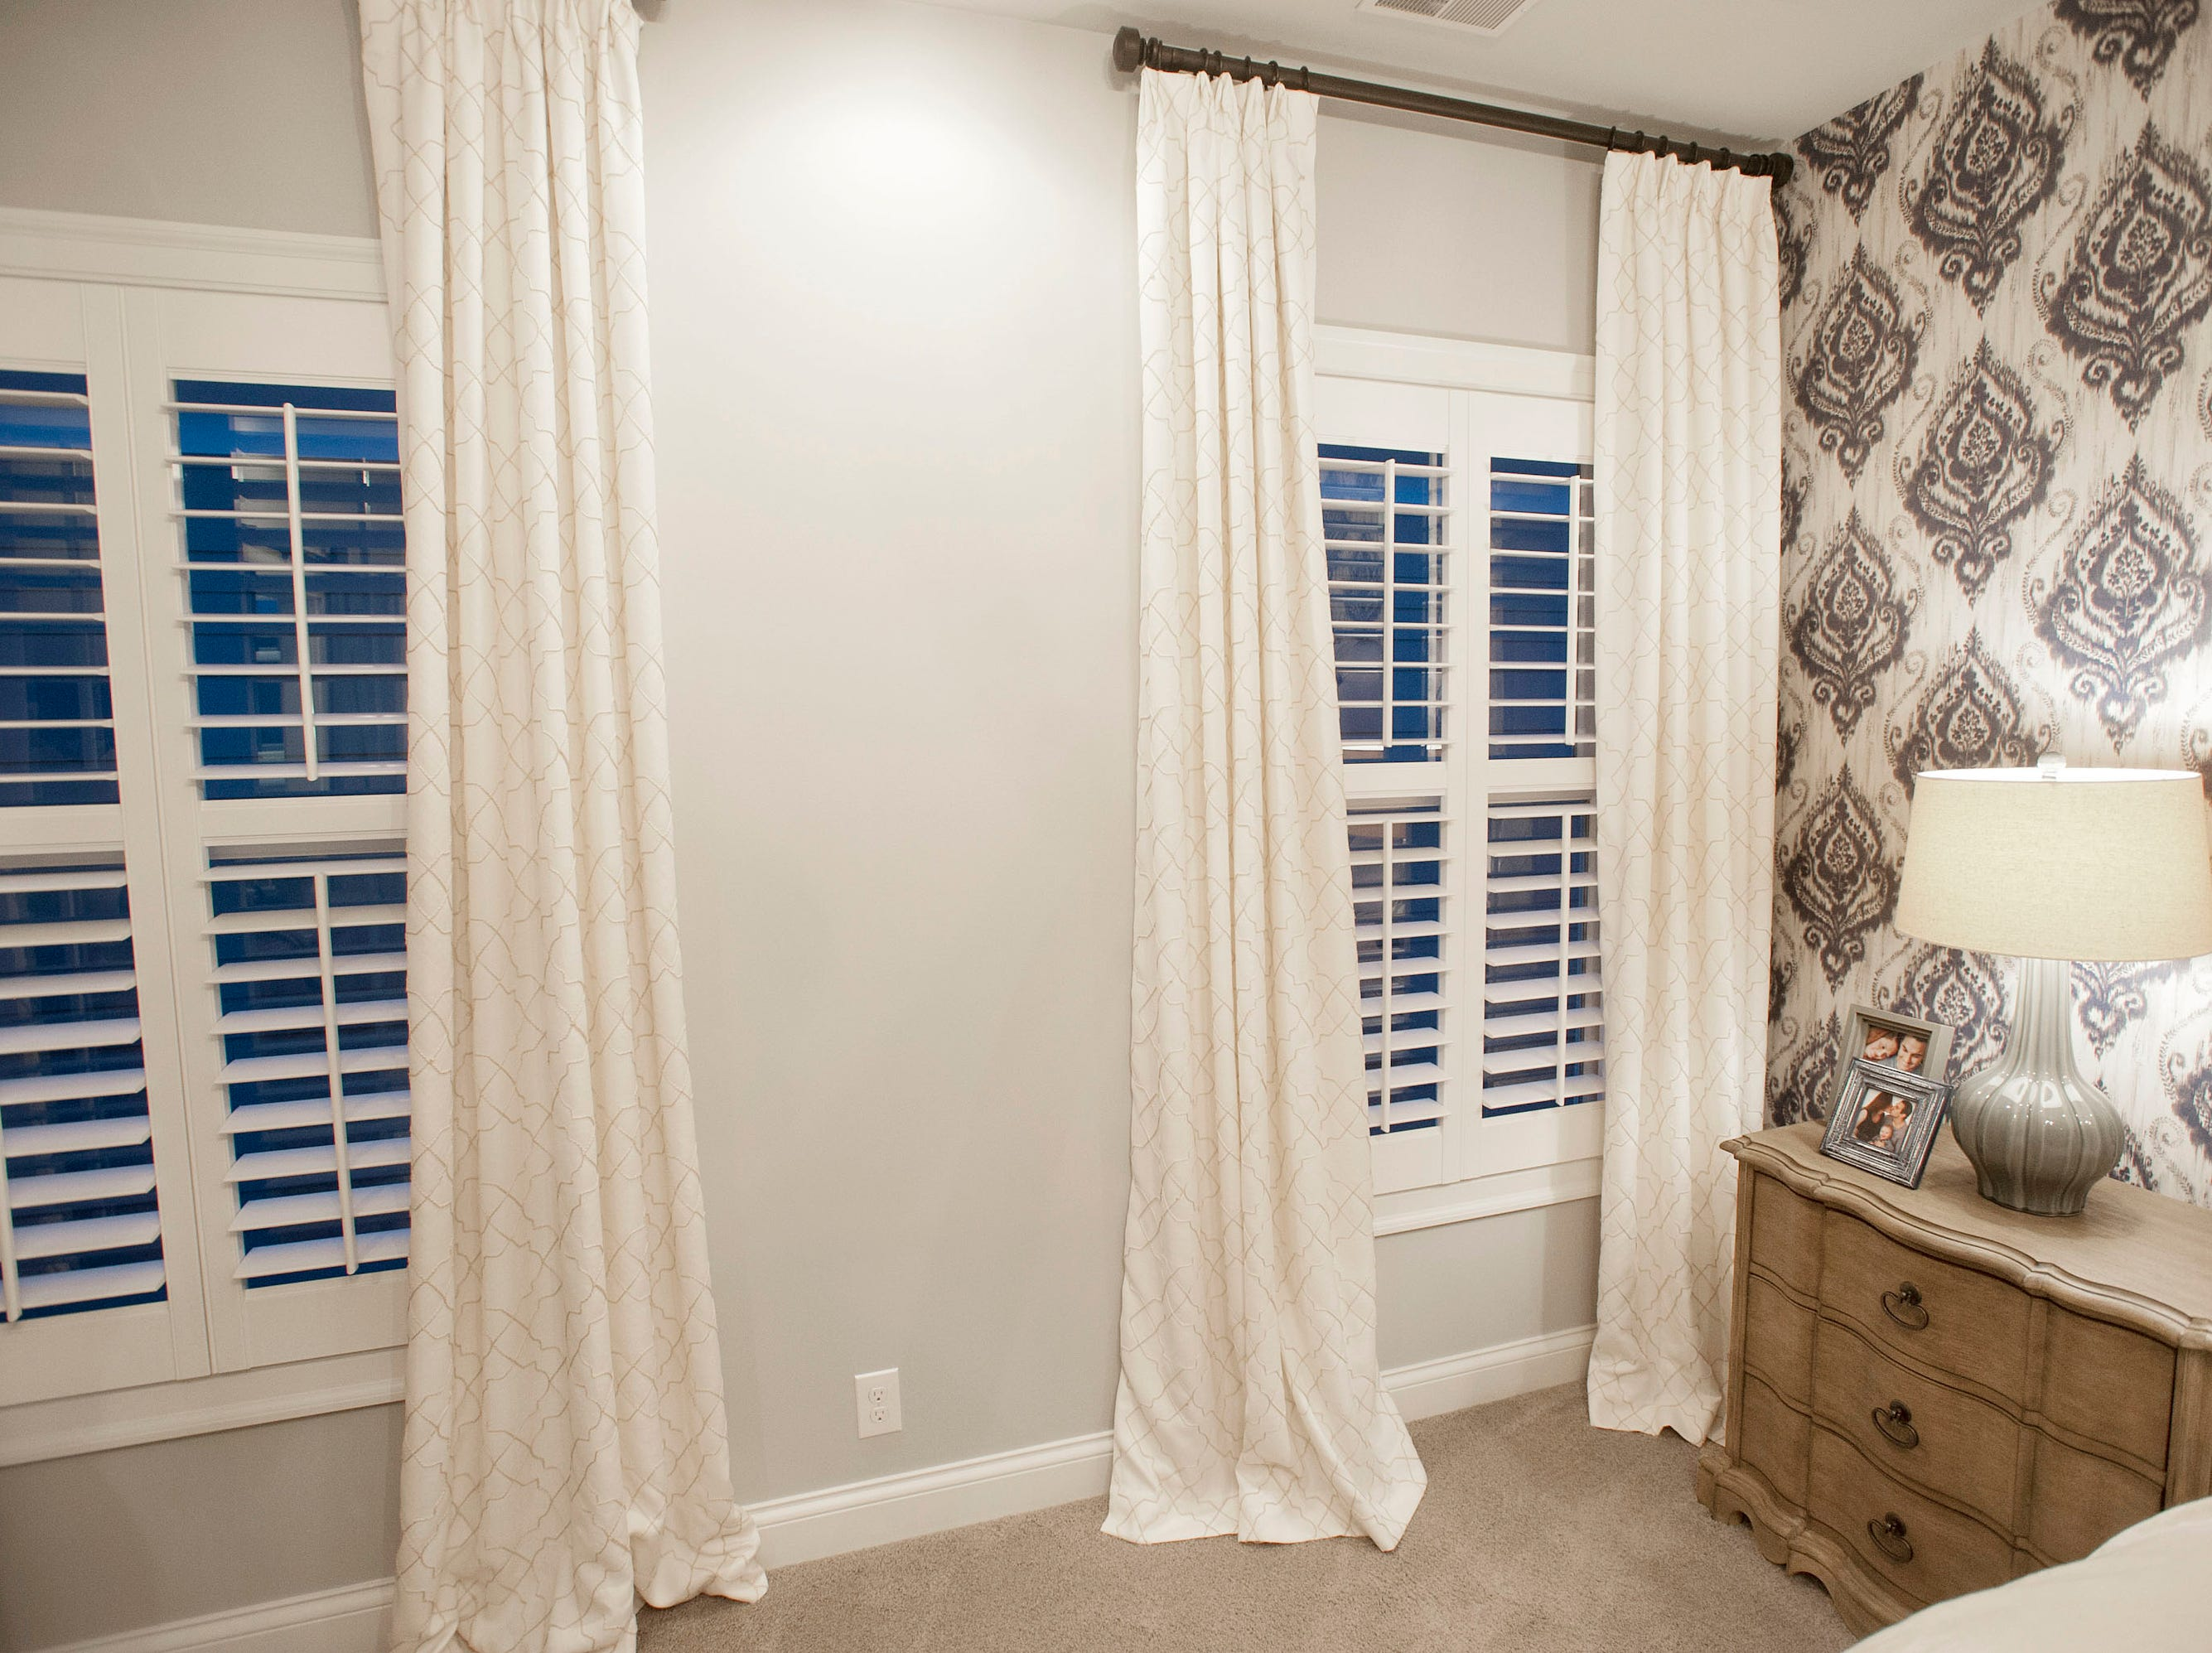 A custom window treatment in the 2nd floor Hannah master bedroom.01 March 2019